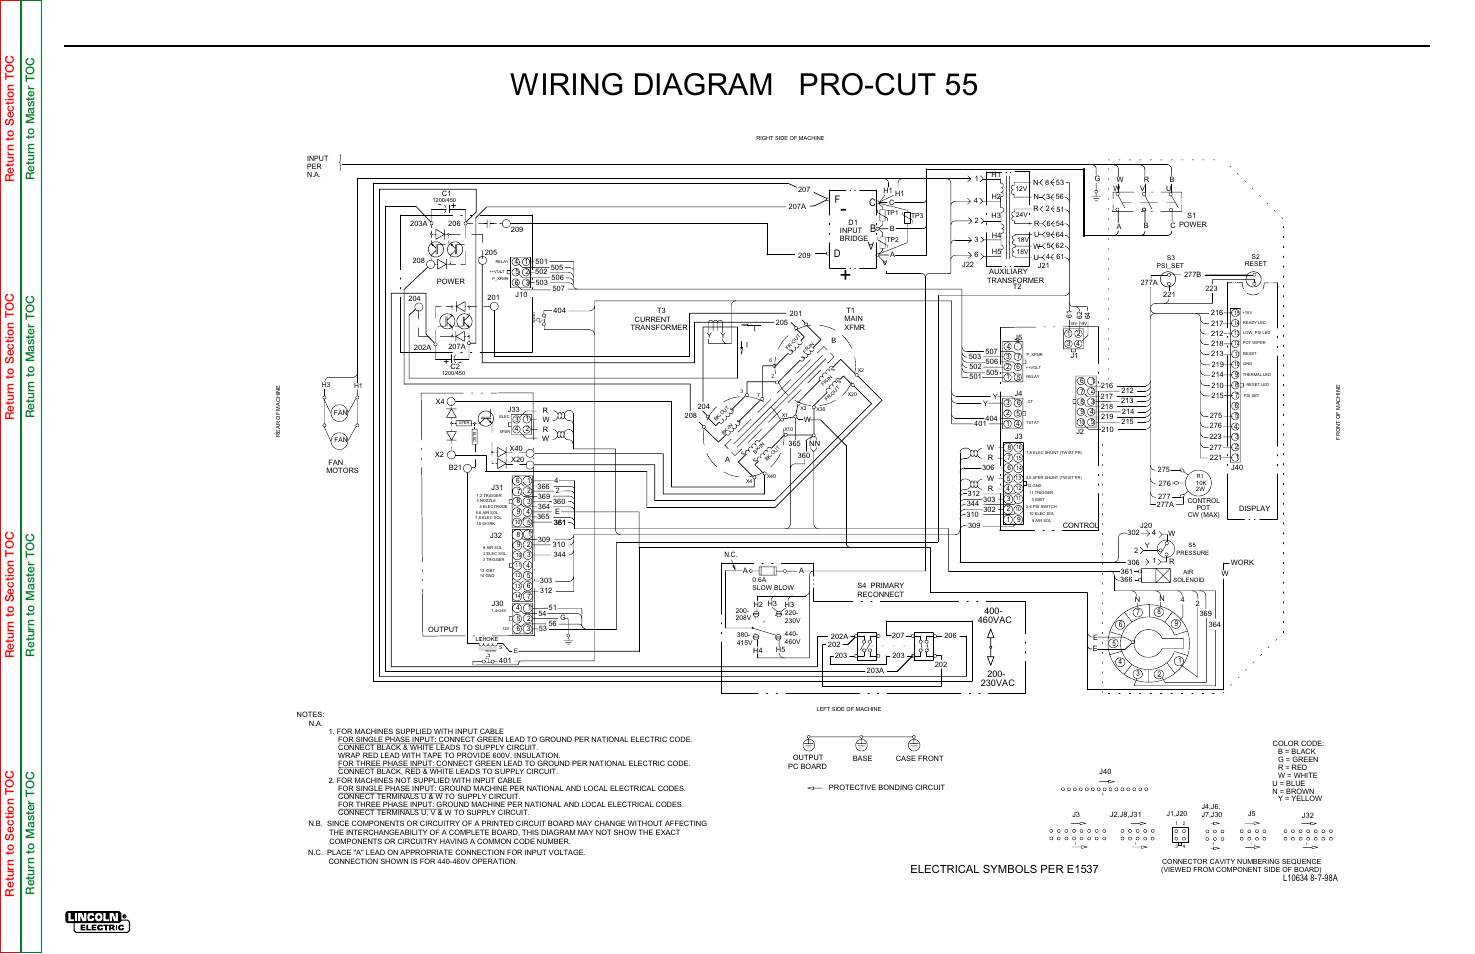 Wiring diagram pro-cut 55, Electrical diagrams, Wiring ... on